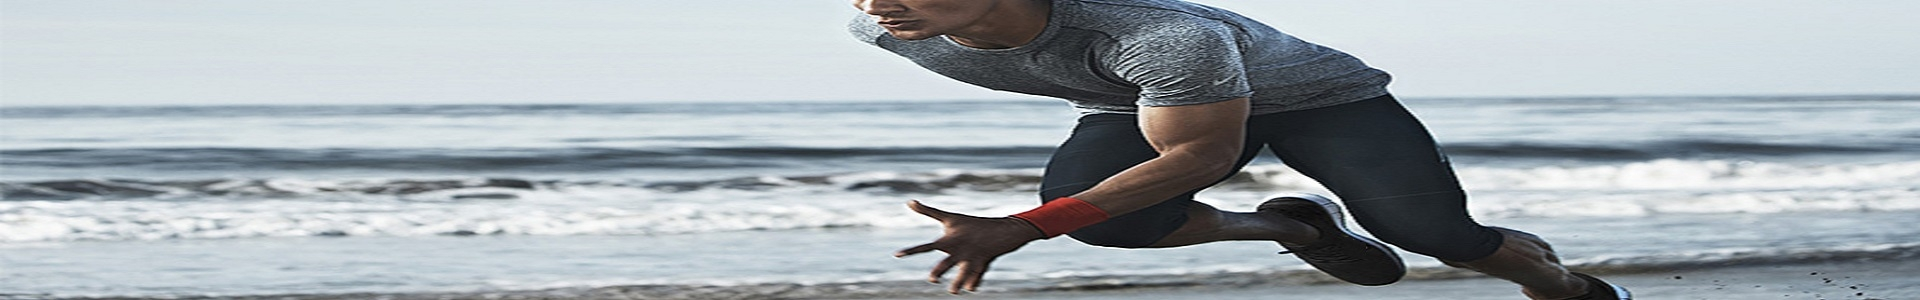 ExtraOffre Sport Banner Mens Clothing Running Category